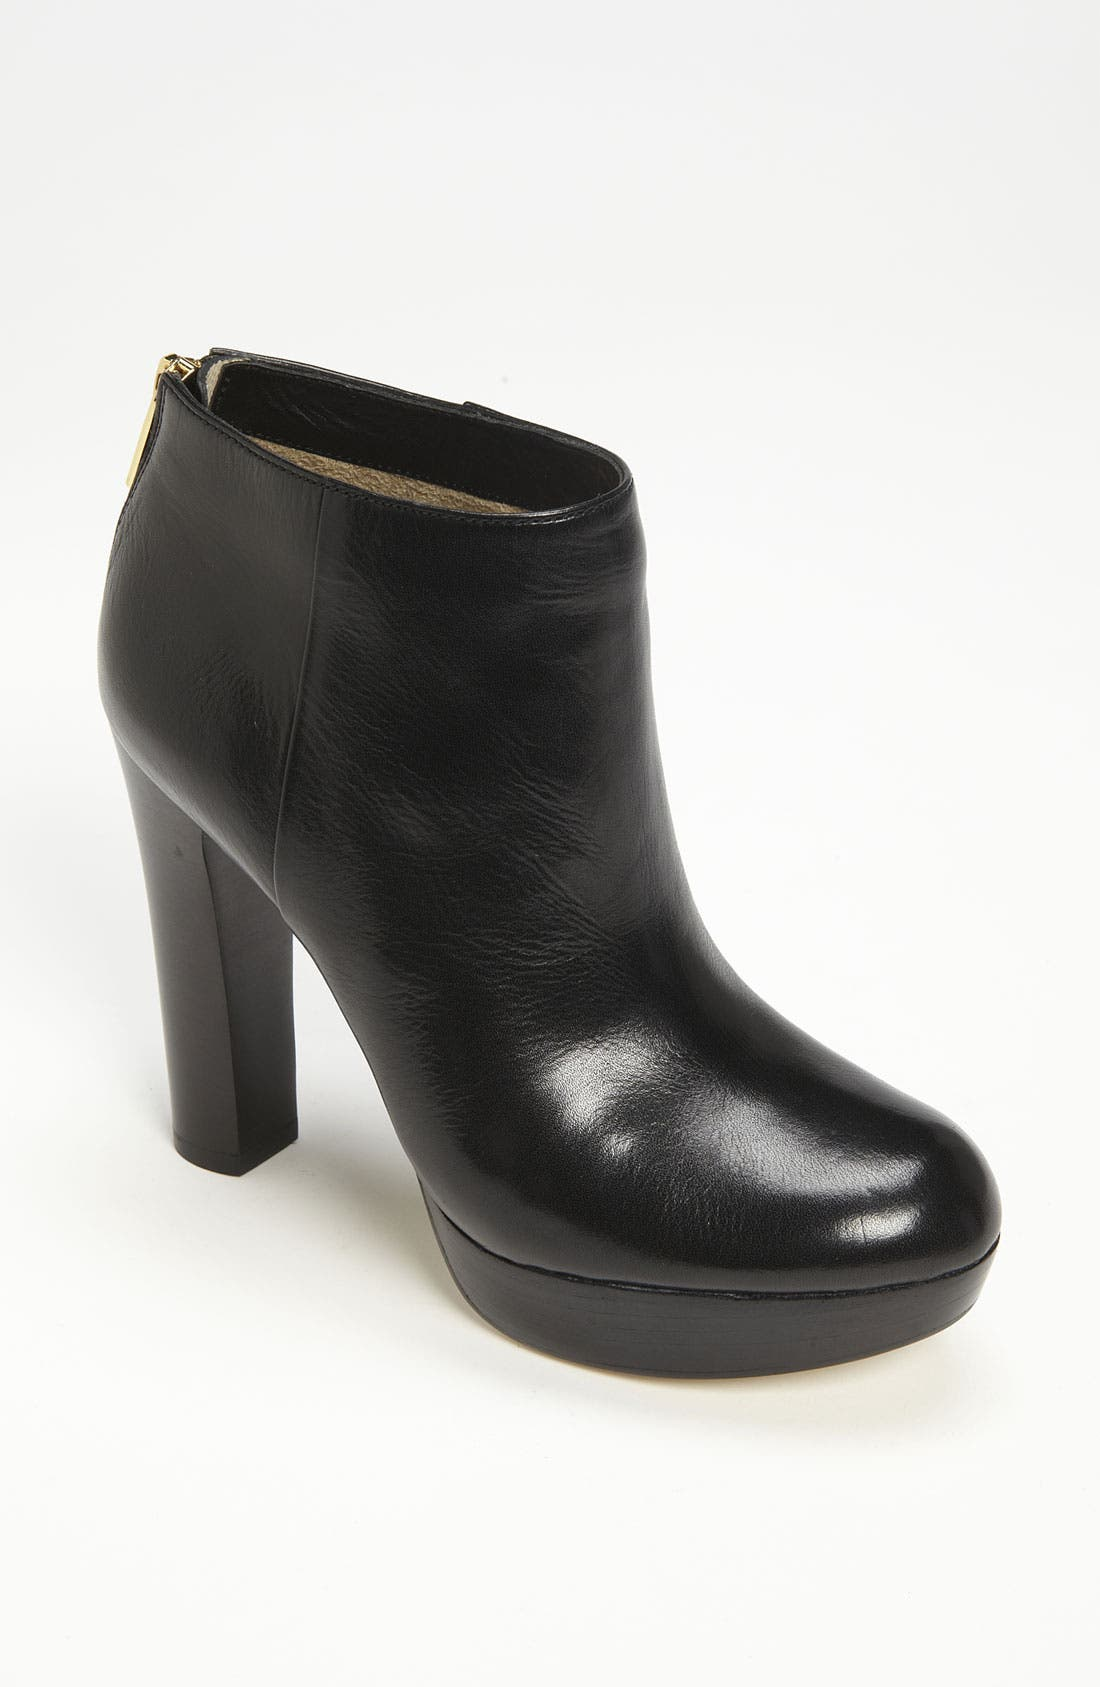 Alternate Image 1 Selected - MICHAEL Michael Kors 'Lesley' Bootie